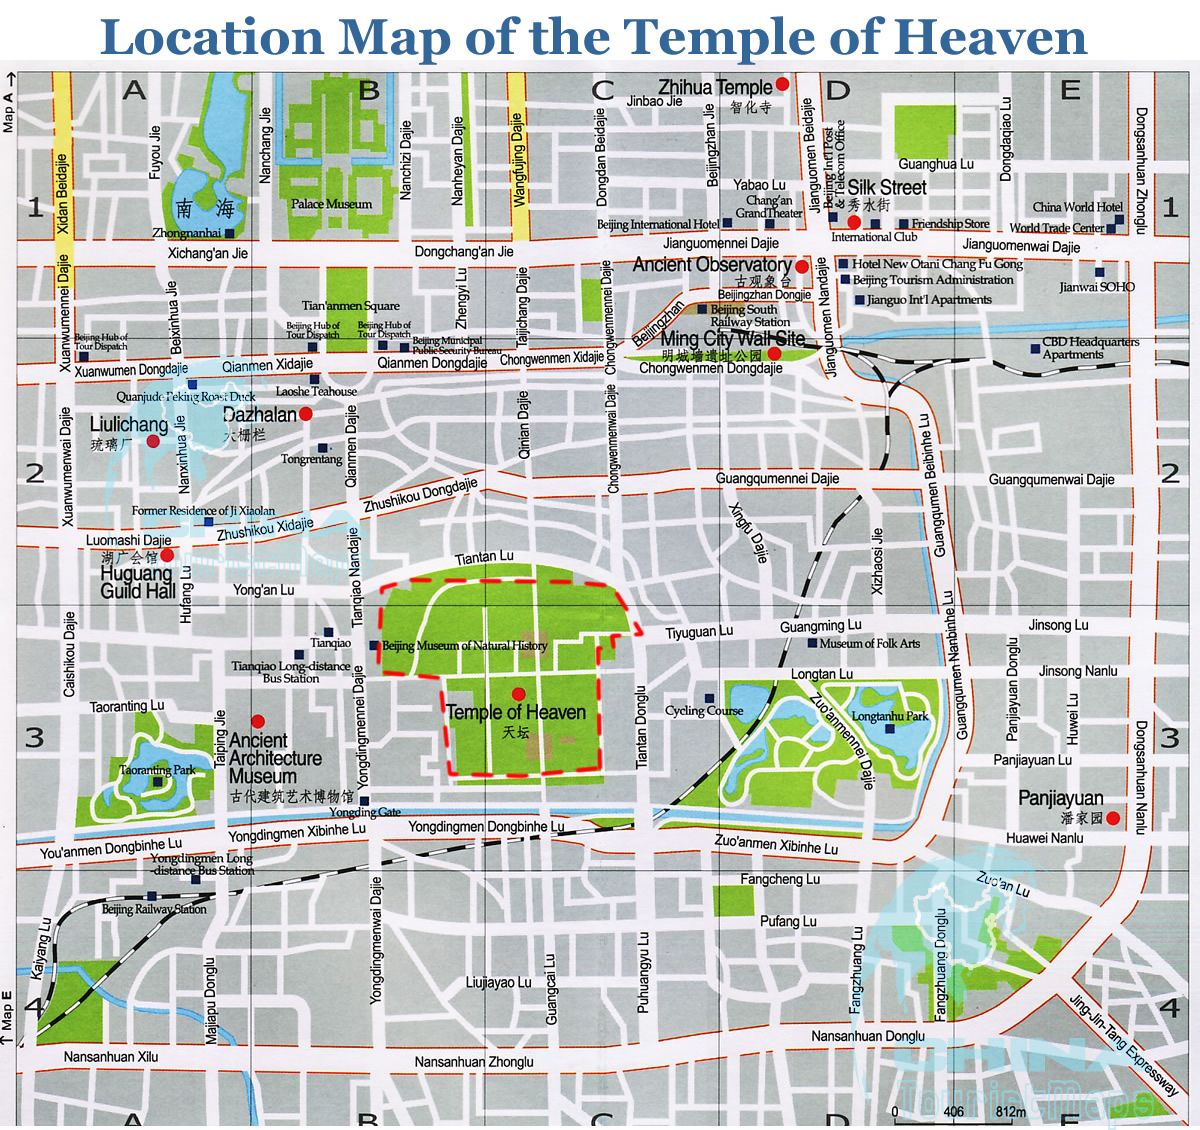 Map Of China And Surrounding Areas.Location Map Of The Temple Of Heaven And Surrounding Area Beijing